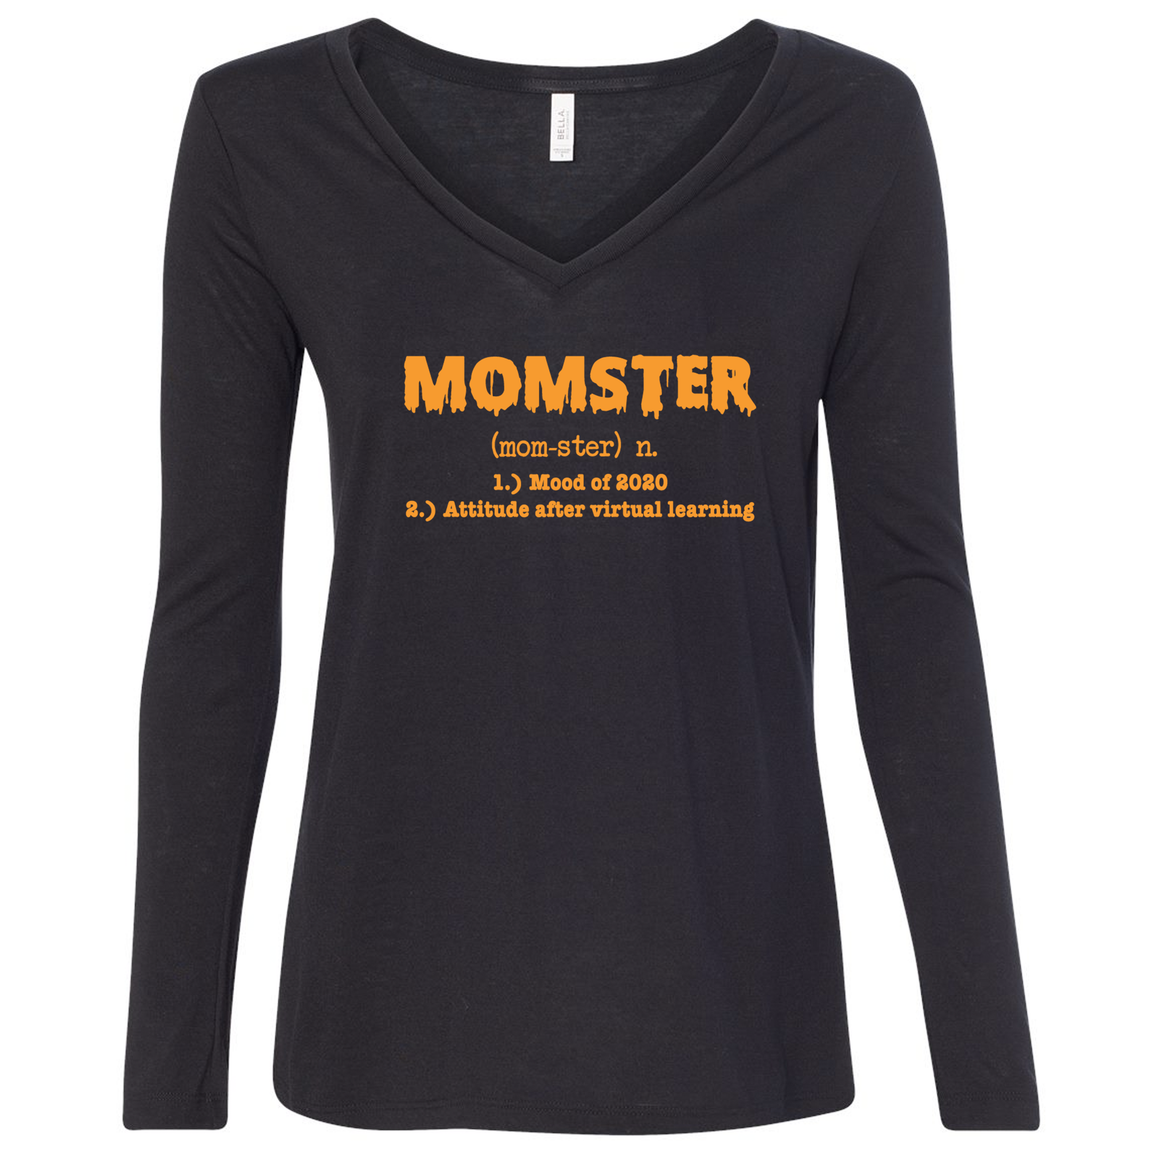 Triblend Women's Relaxed Fit Momster Long Sleeve Shirt